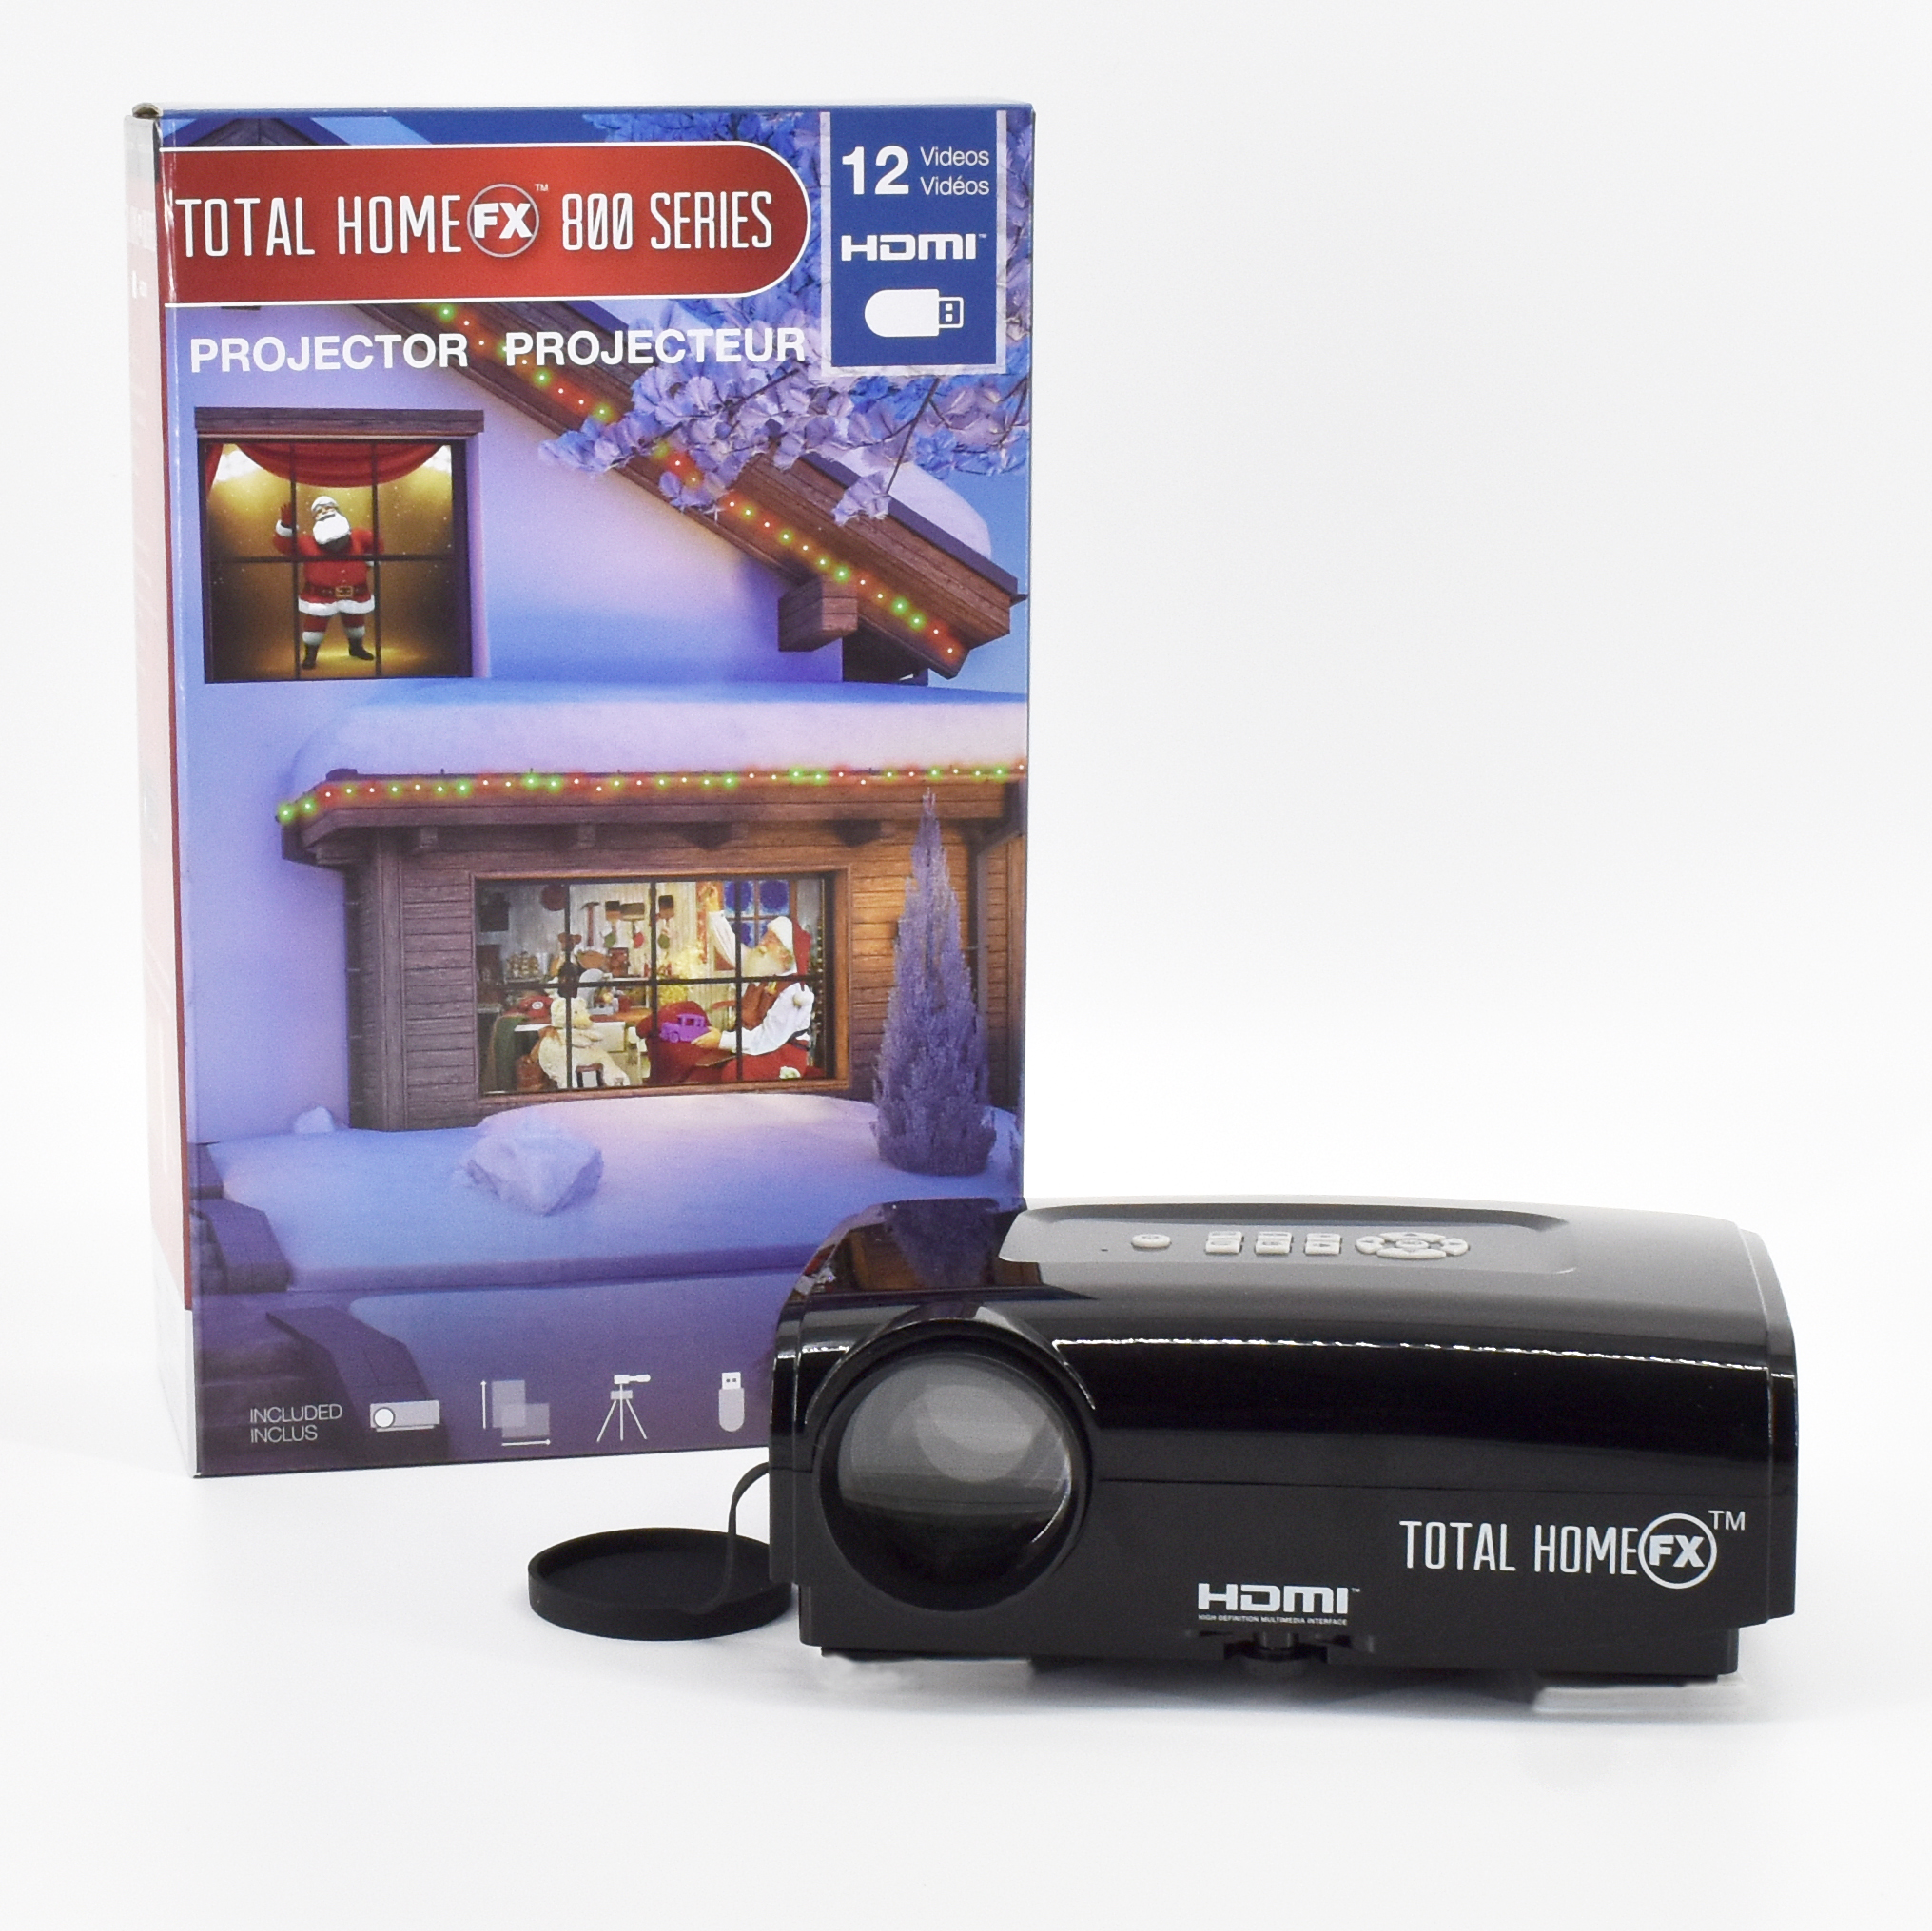 Total Home Decor: Total HomeFX 800 Series Projector » Total Home Decor